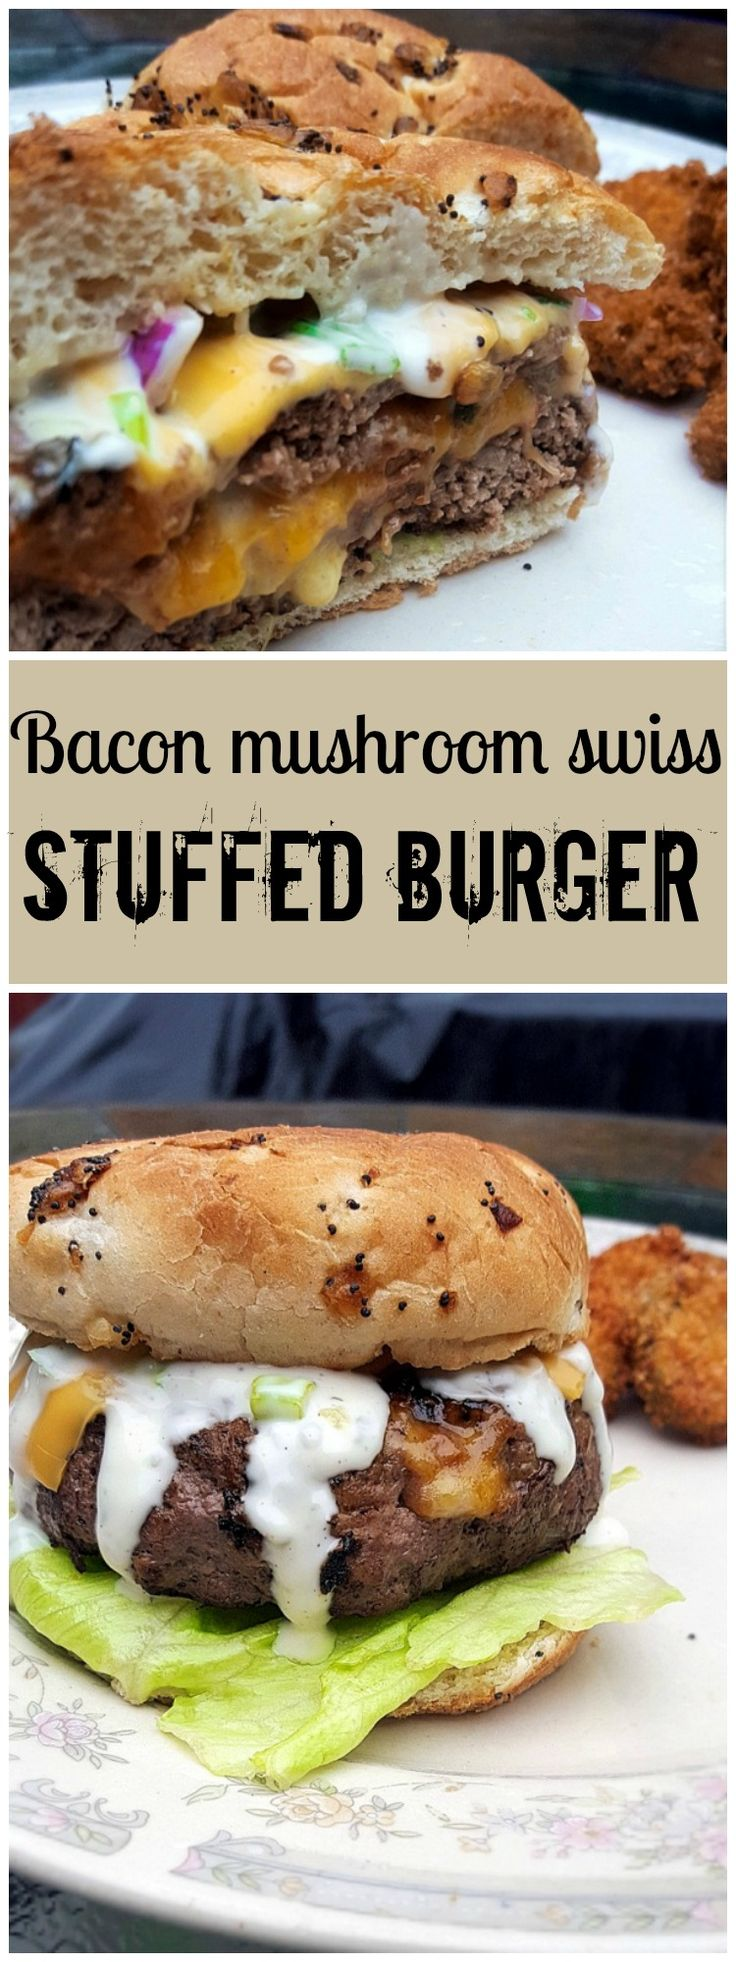 Bacon mushroom swiss stuffed burger - A juicy burger stuffed with melted cheese, bacon, and mushrooms; Topped with a spicy ranch sauce. Easy and so delicious, the whole family will enjoy it!